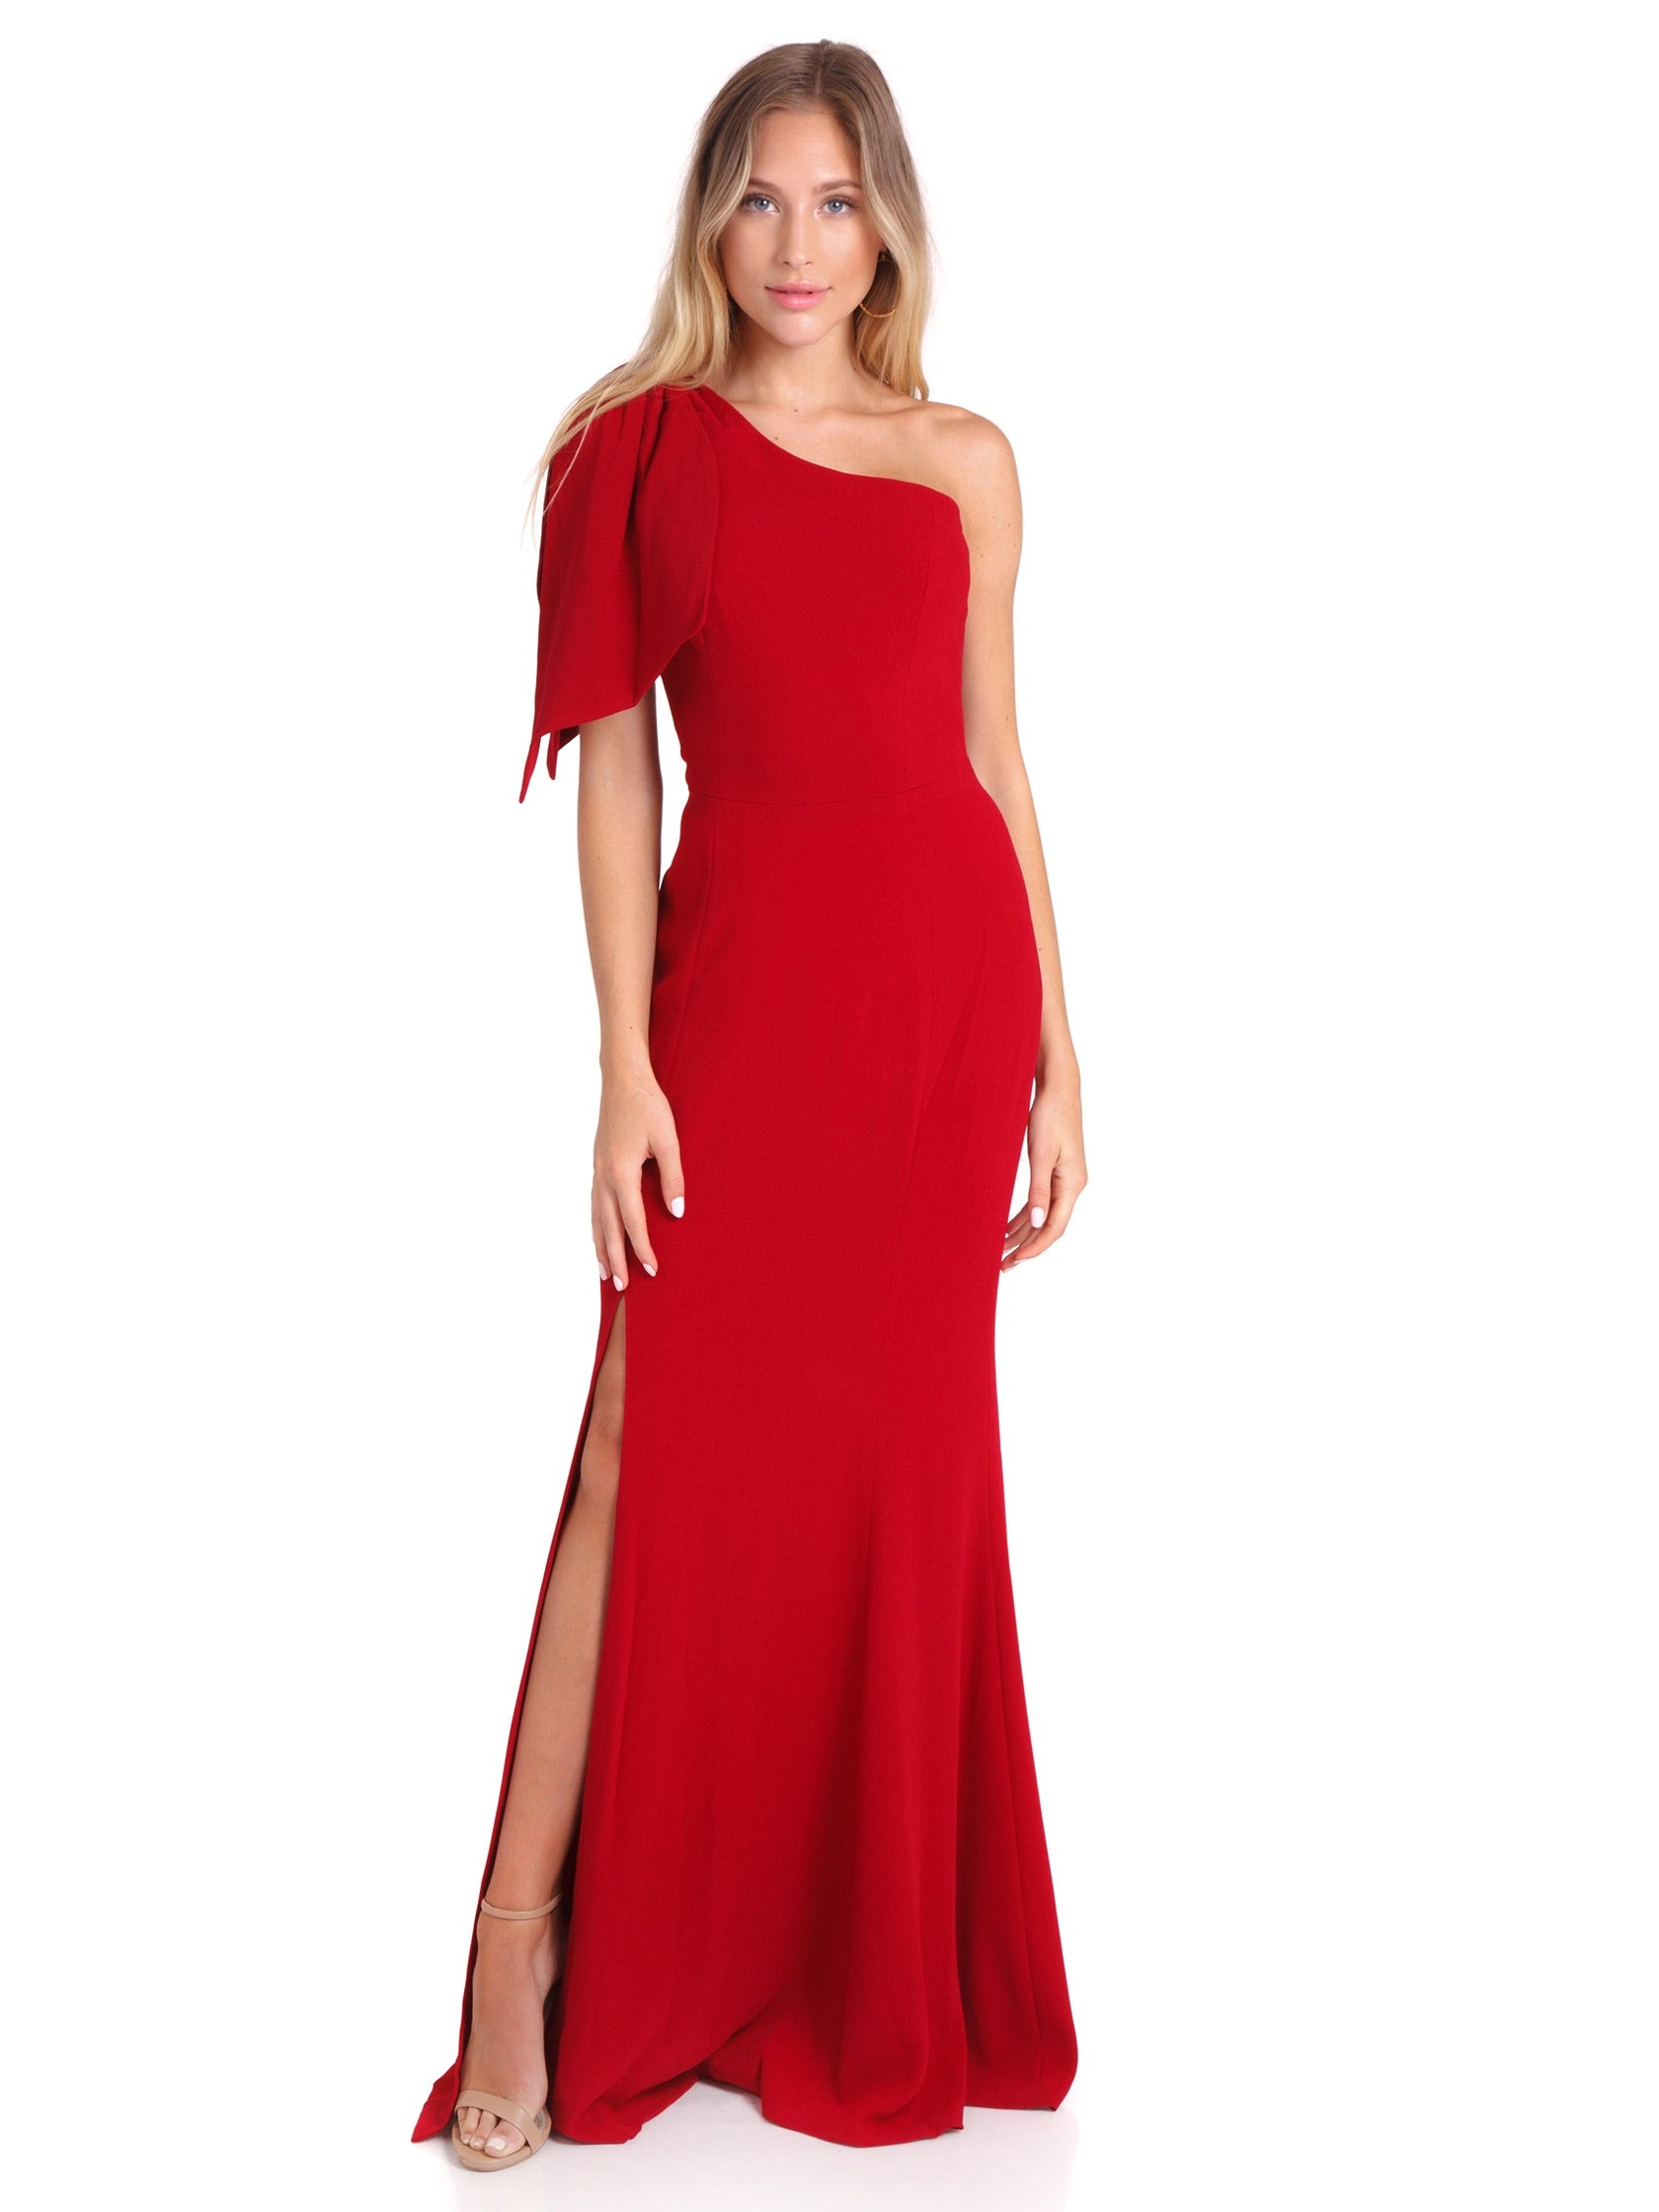 Girl outfit in a dress rental from Dress the Population called Georgina Crepe One-shoulder Gown